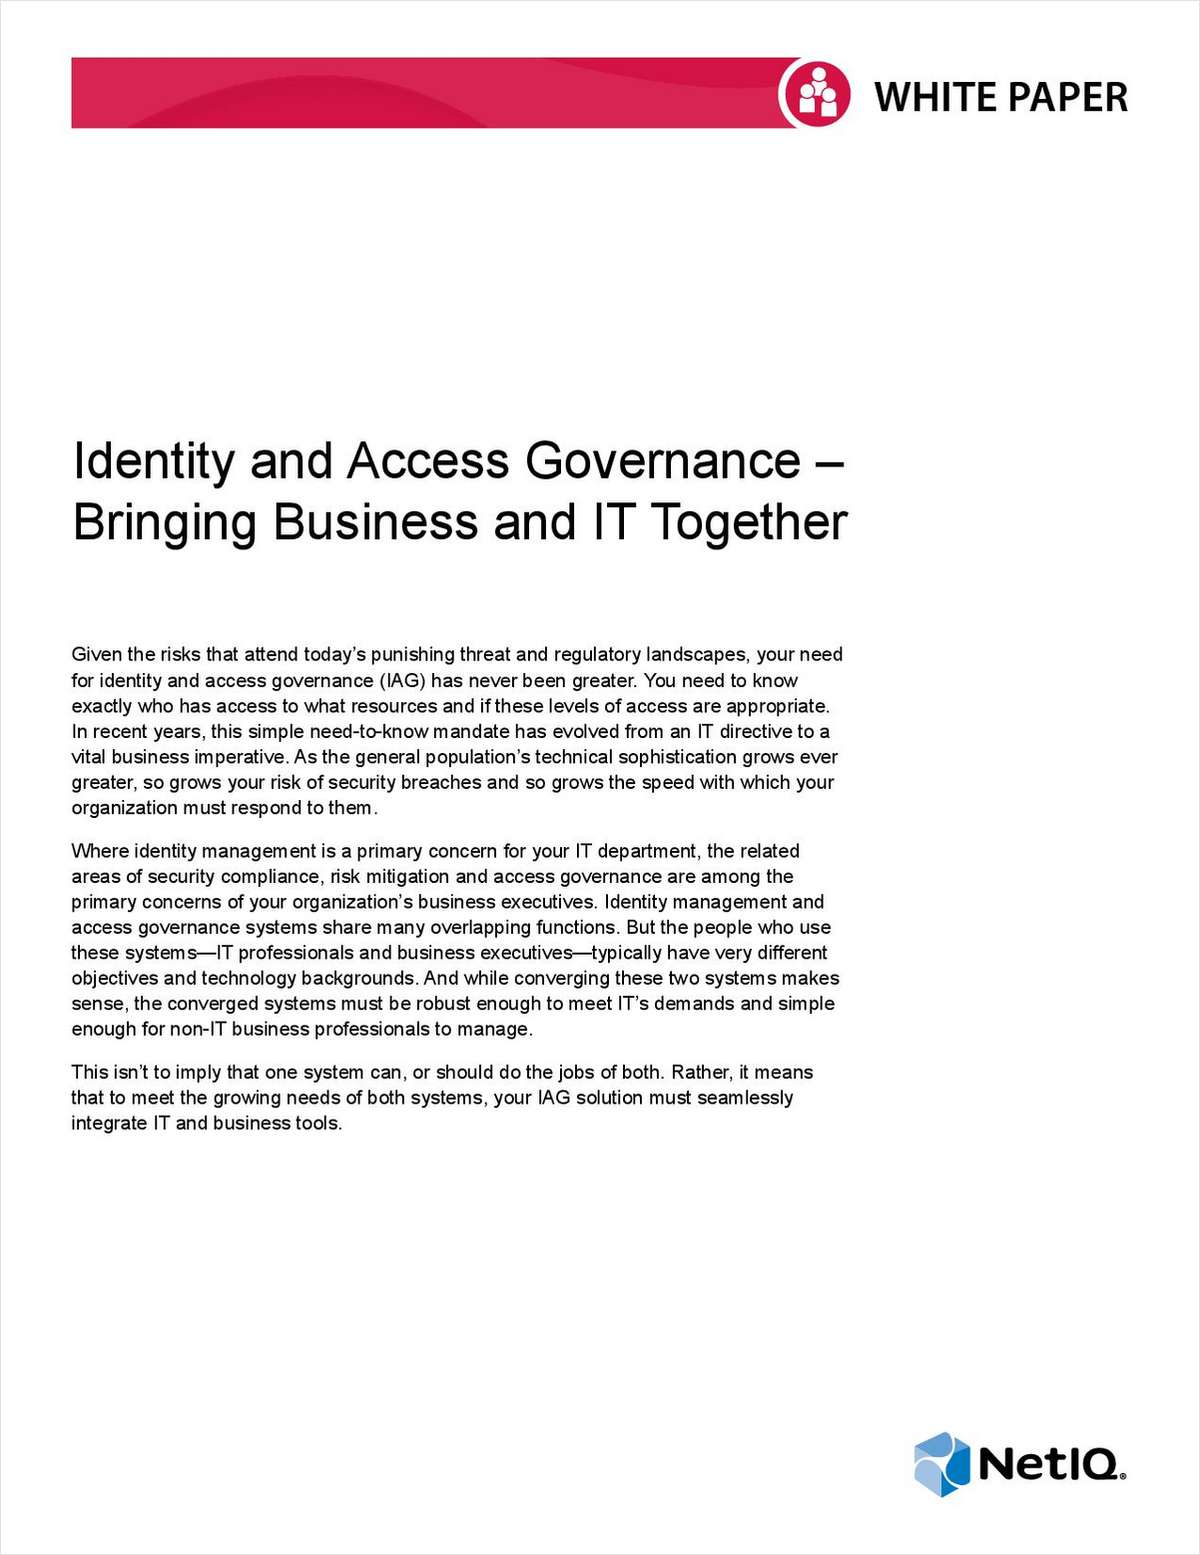 Identity and Access Governance: Bringing Business and IT Together